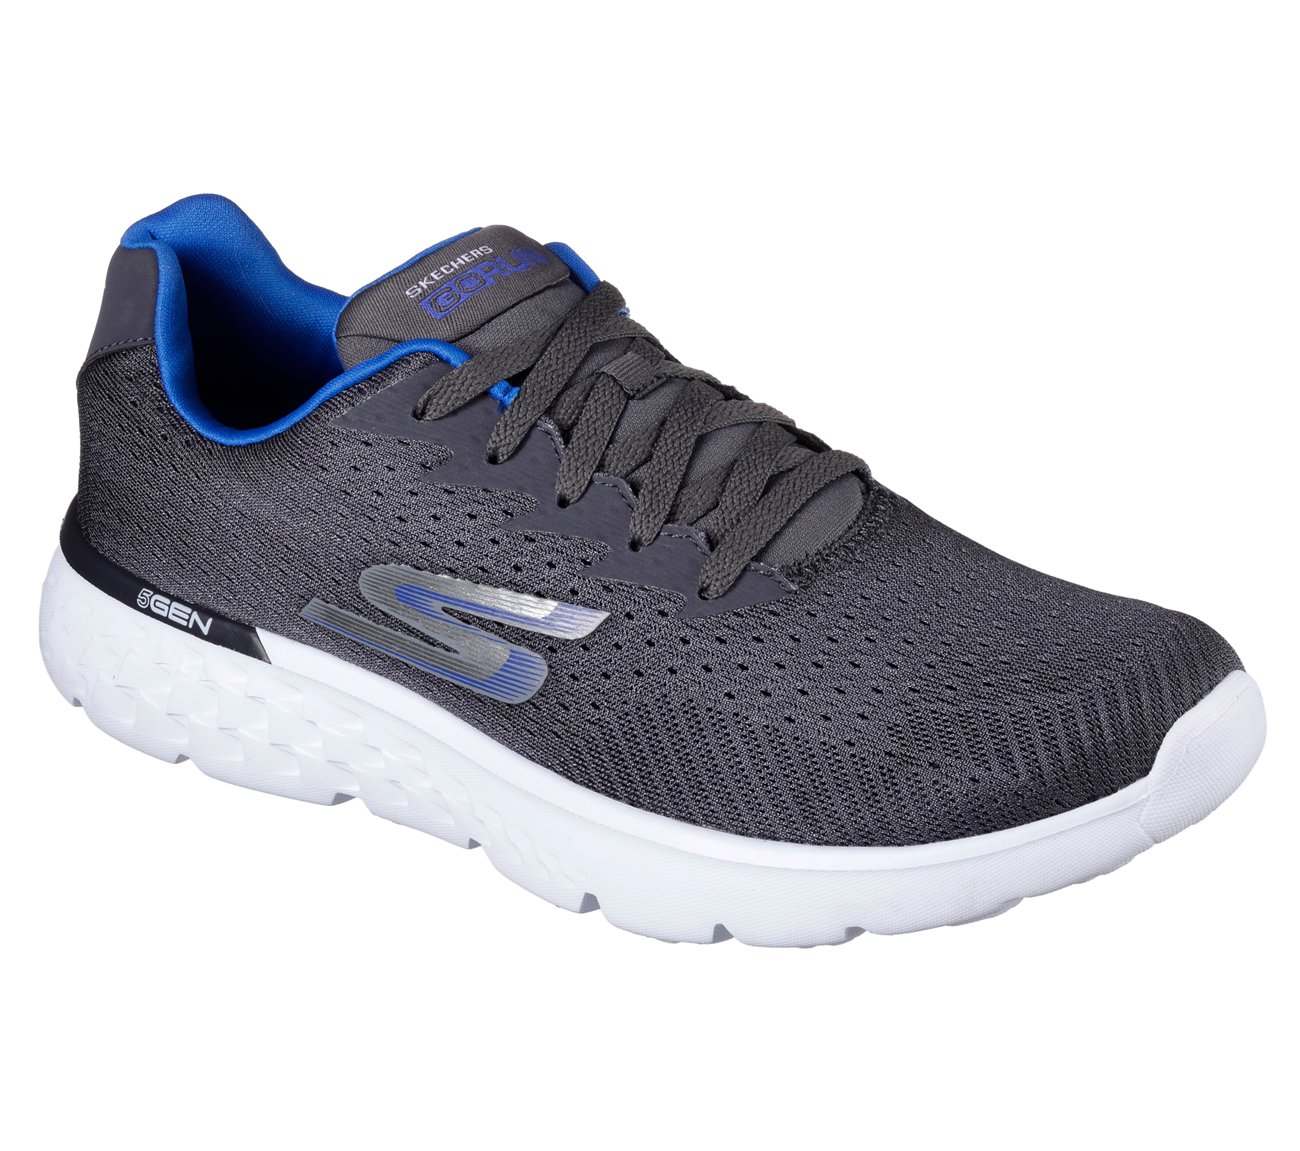 Skechers Extra Wide Golf Shoes